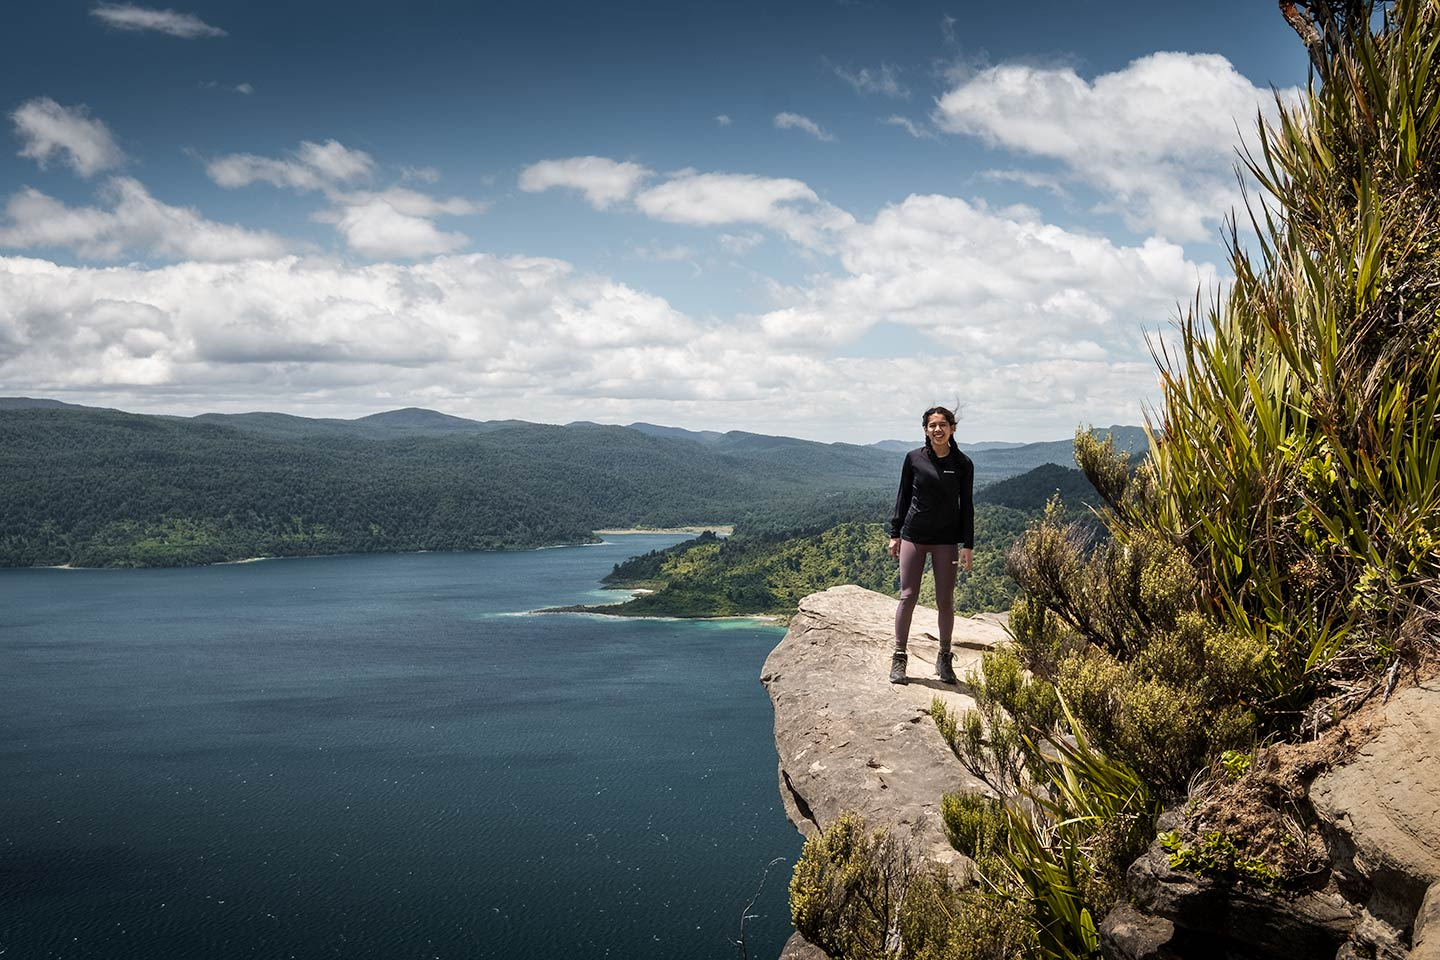 A woman standing on Panekire bluff with a large lake behind her.